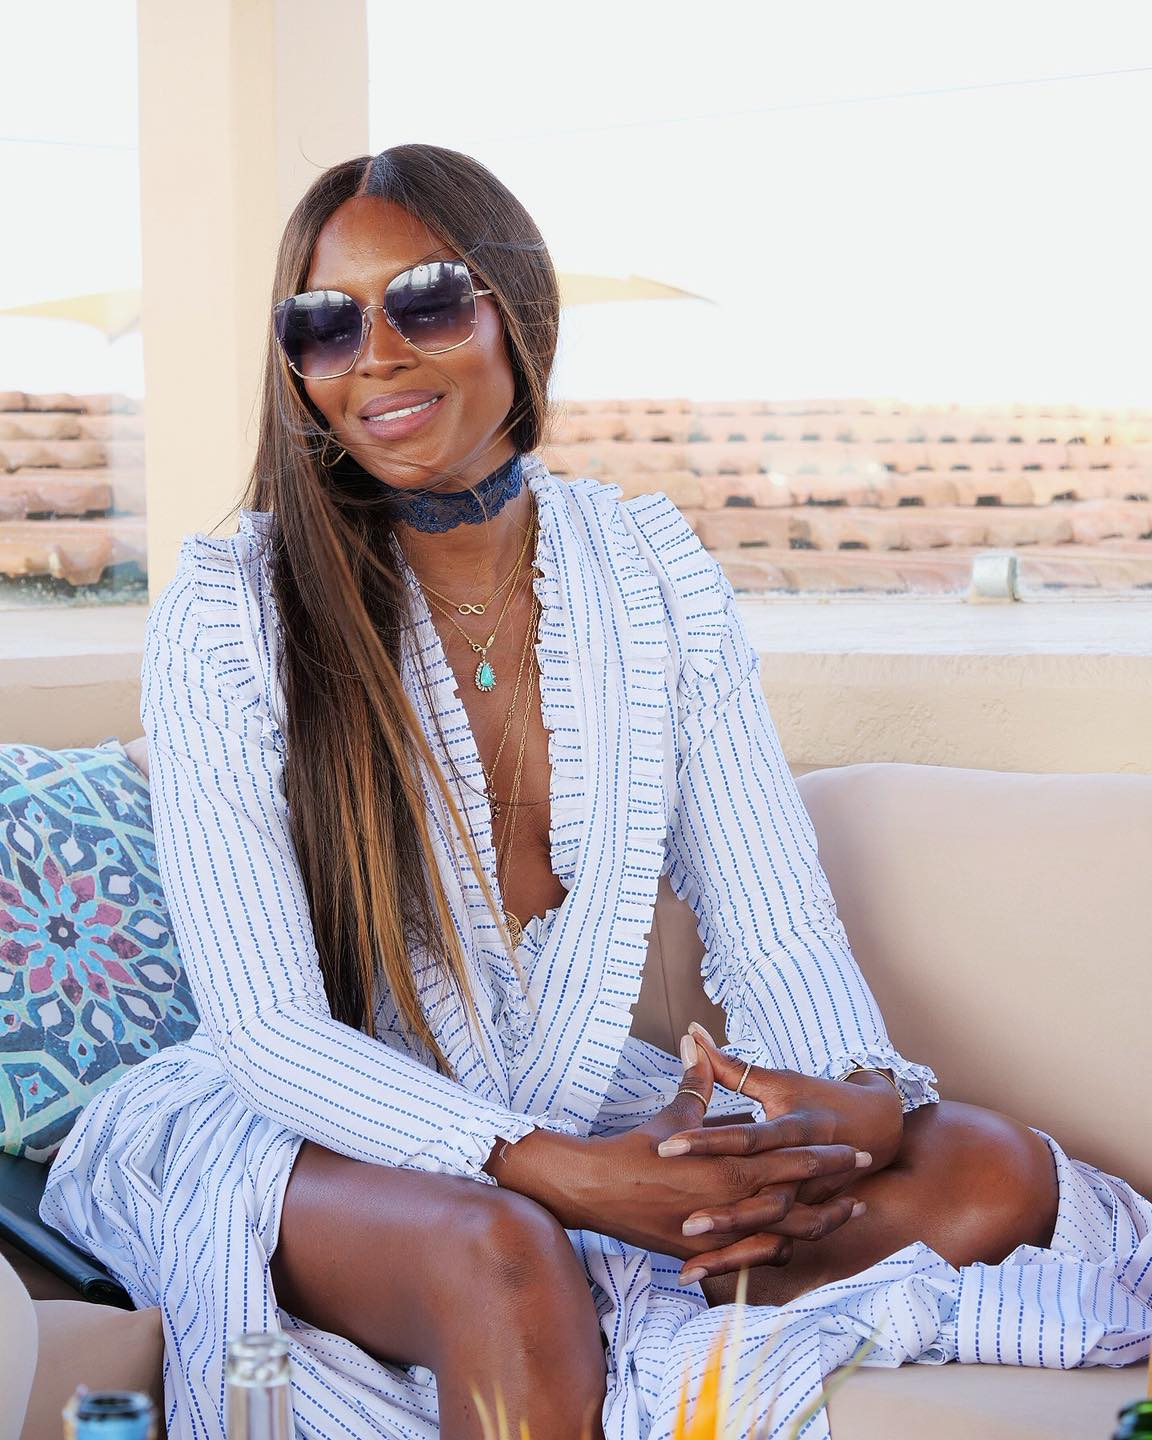 British supermodel Naomi Campbell to promote tourism to Kenya (Photo: Ministry of Tourism – Kenya/Facebook)